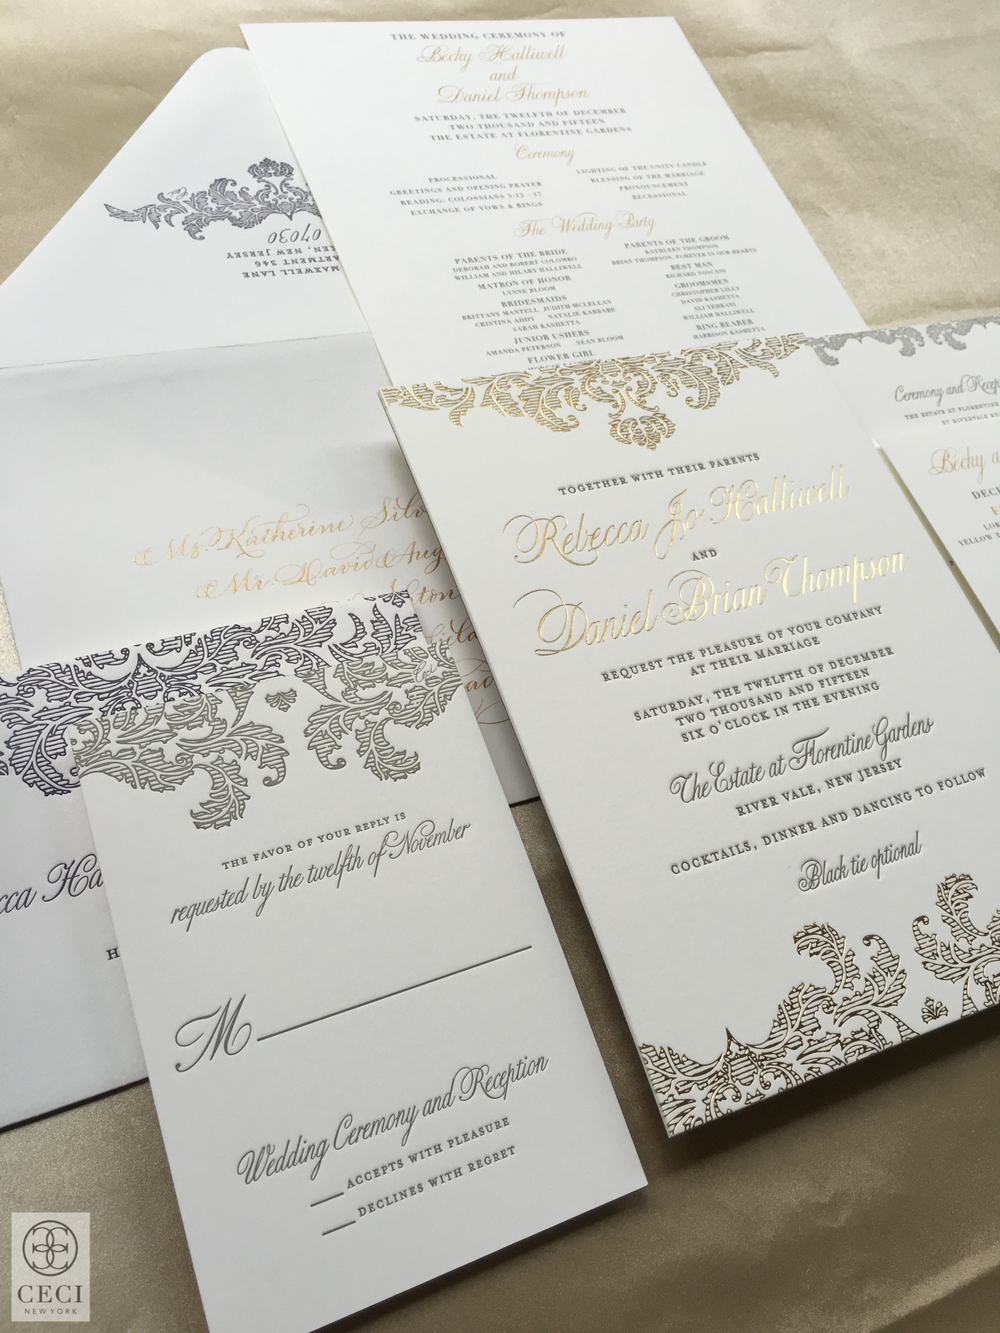 Ceci_New_York_New_Jersey_Invitations_Wedding_New_York_Elegance_Silver_Blue_Letterpress_Deco_Classic_Foil_Stamping_Custom_Couture_Personalized-81.jpg